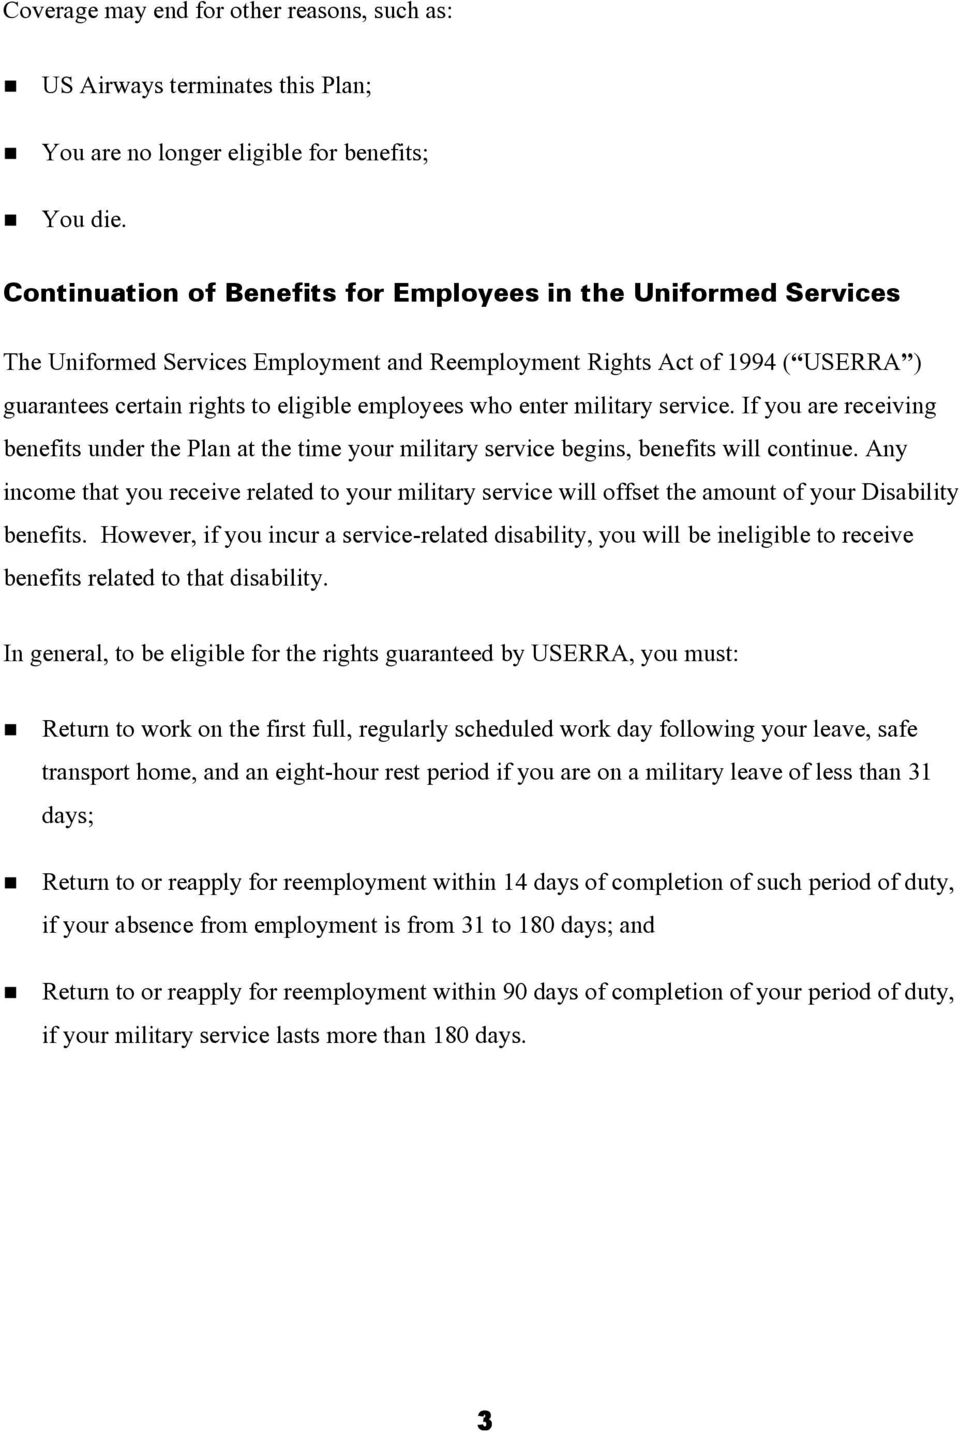 enter military service. If you are receiving benefits under the Plan at the time your military service begins, benefits will continue.